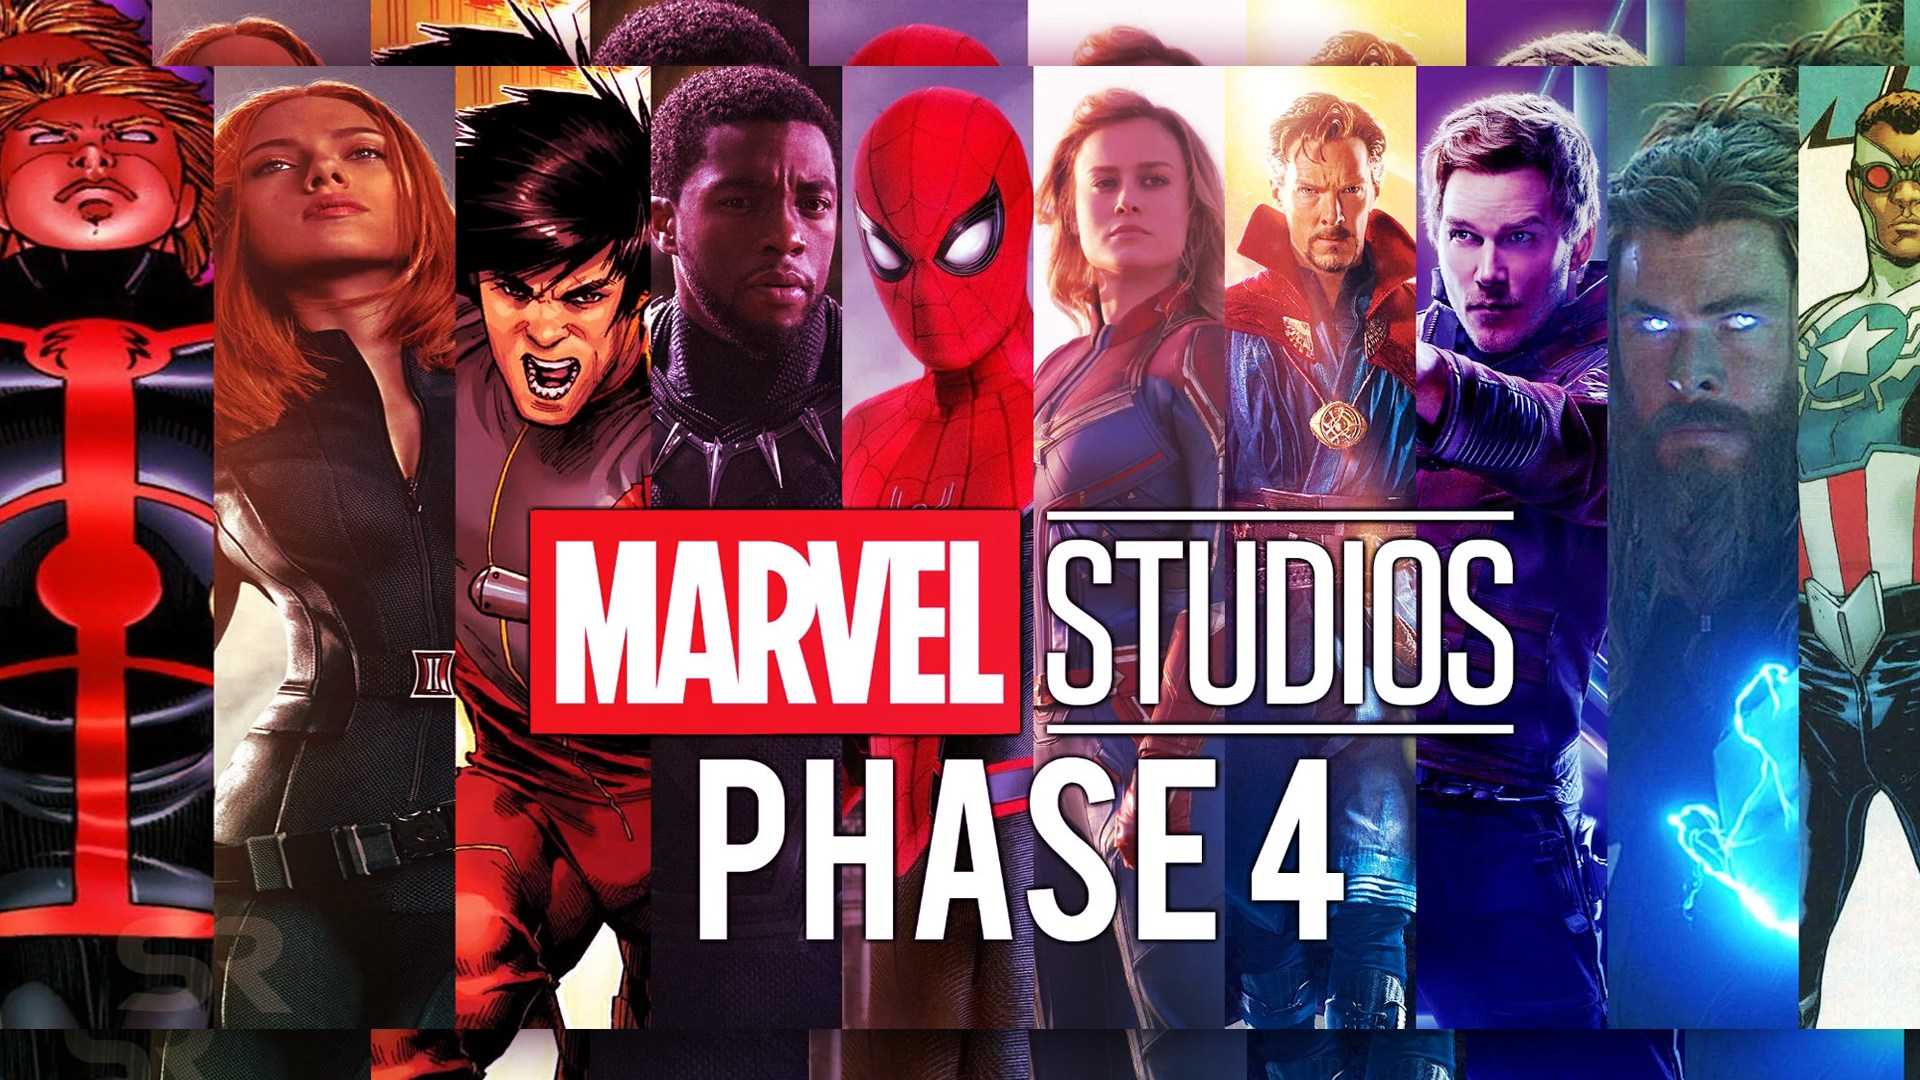 MCU Phase 4 Plans and Movies